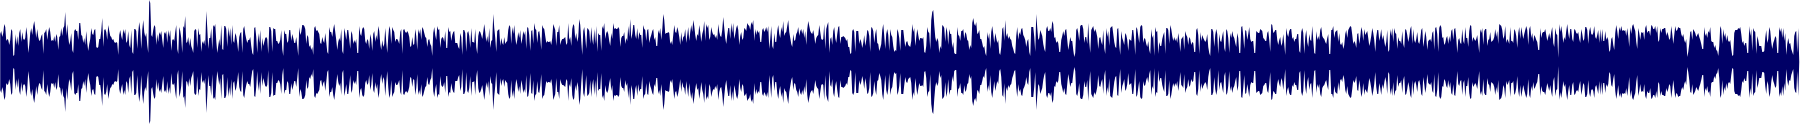 waveform of track #71524